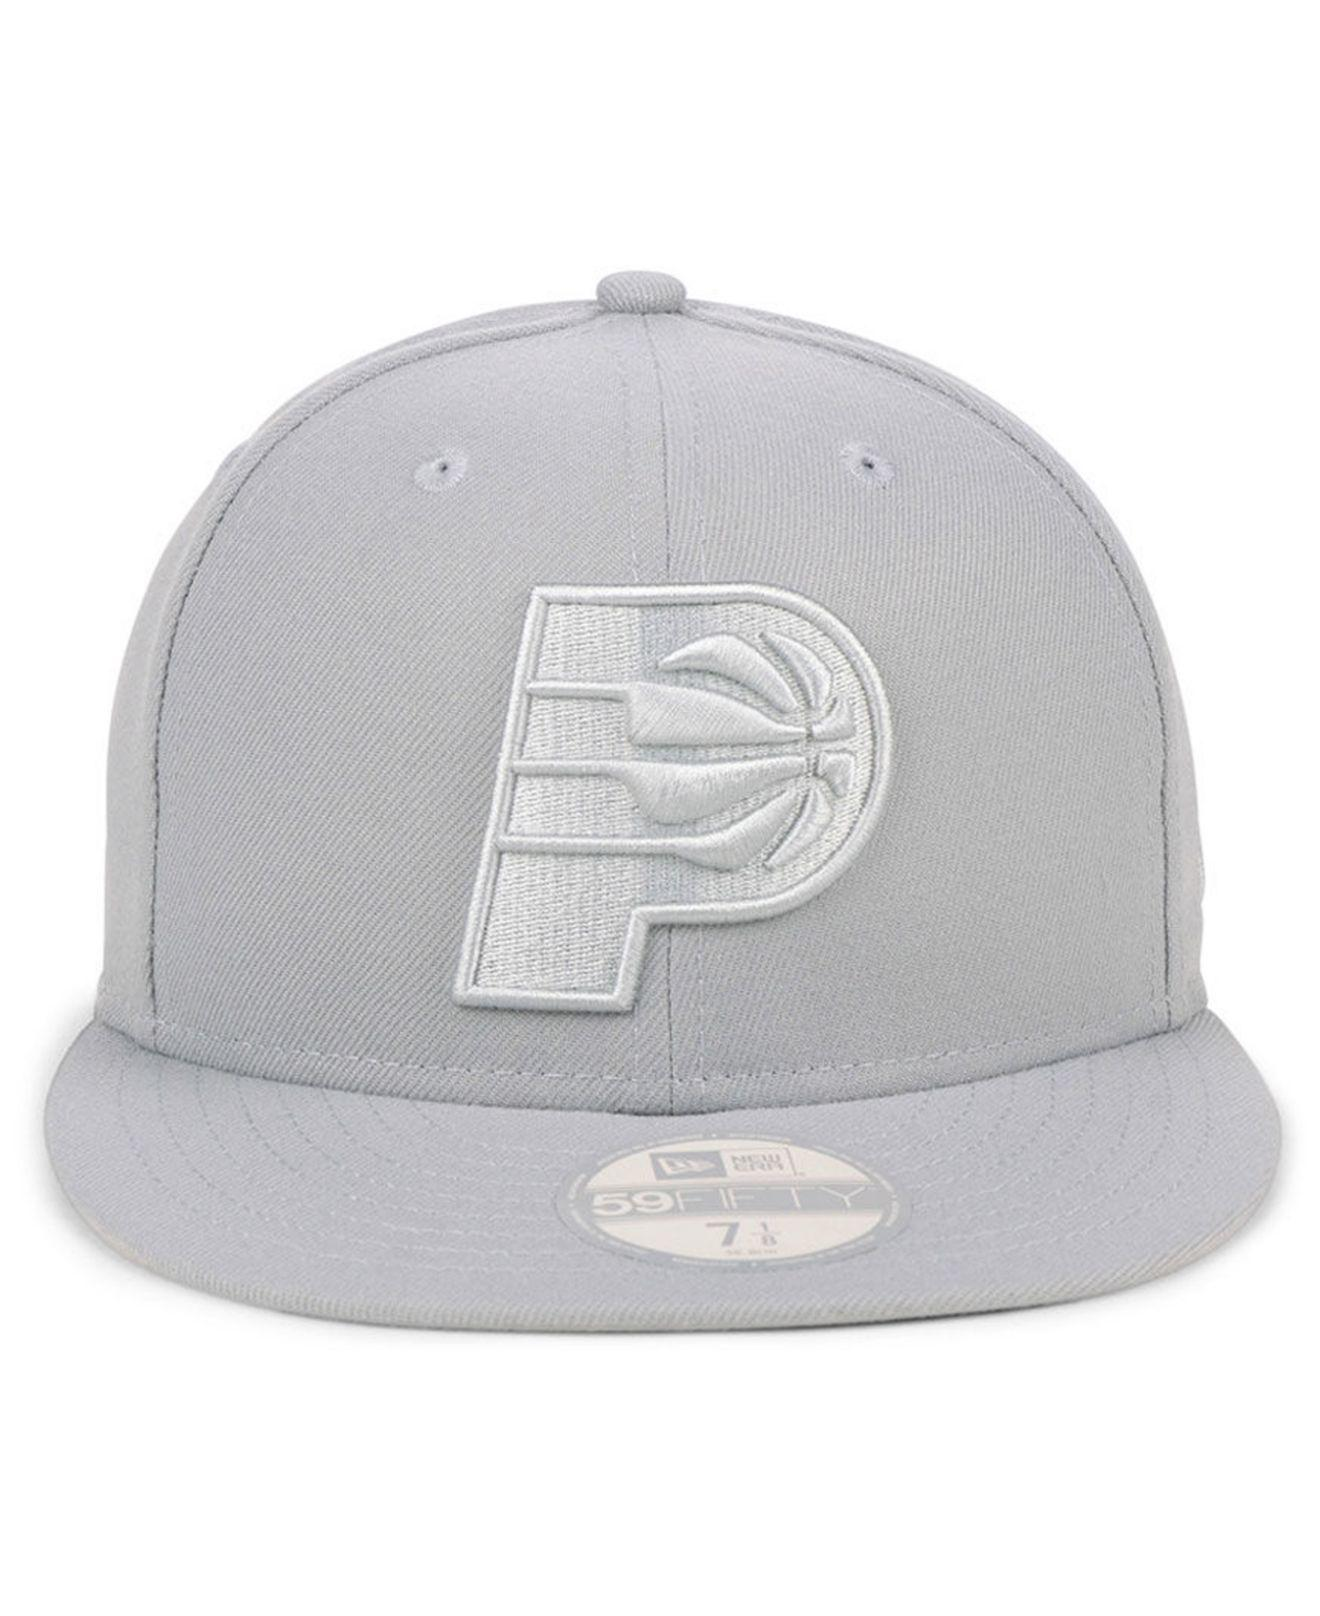 ... black graph 59fifty cap bc1bd d7e3e  authentic lyst ktz indiana pacers  fall prism pack 59fifty fitted cap in gray for men d8ba0 0e673fcb4b22